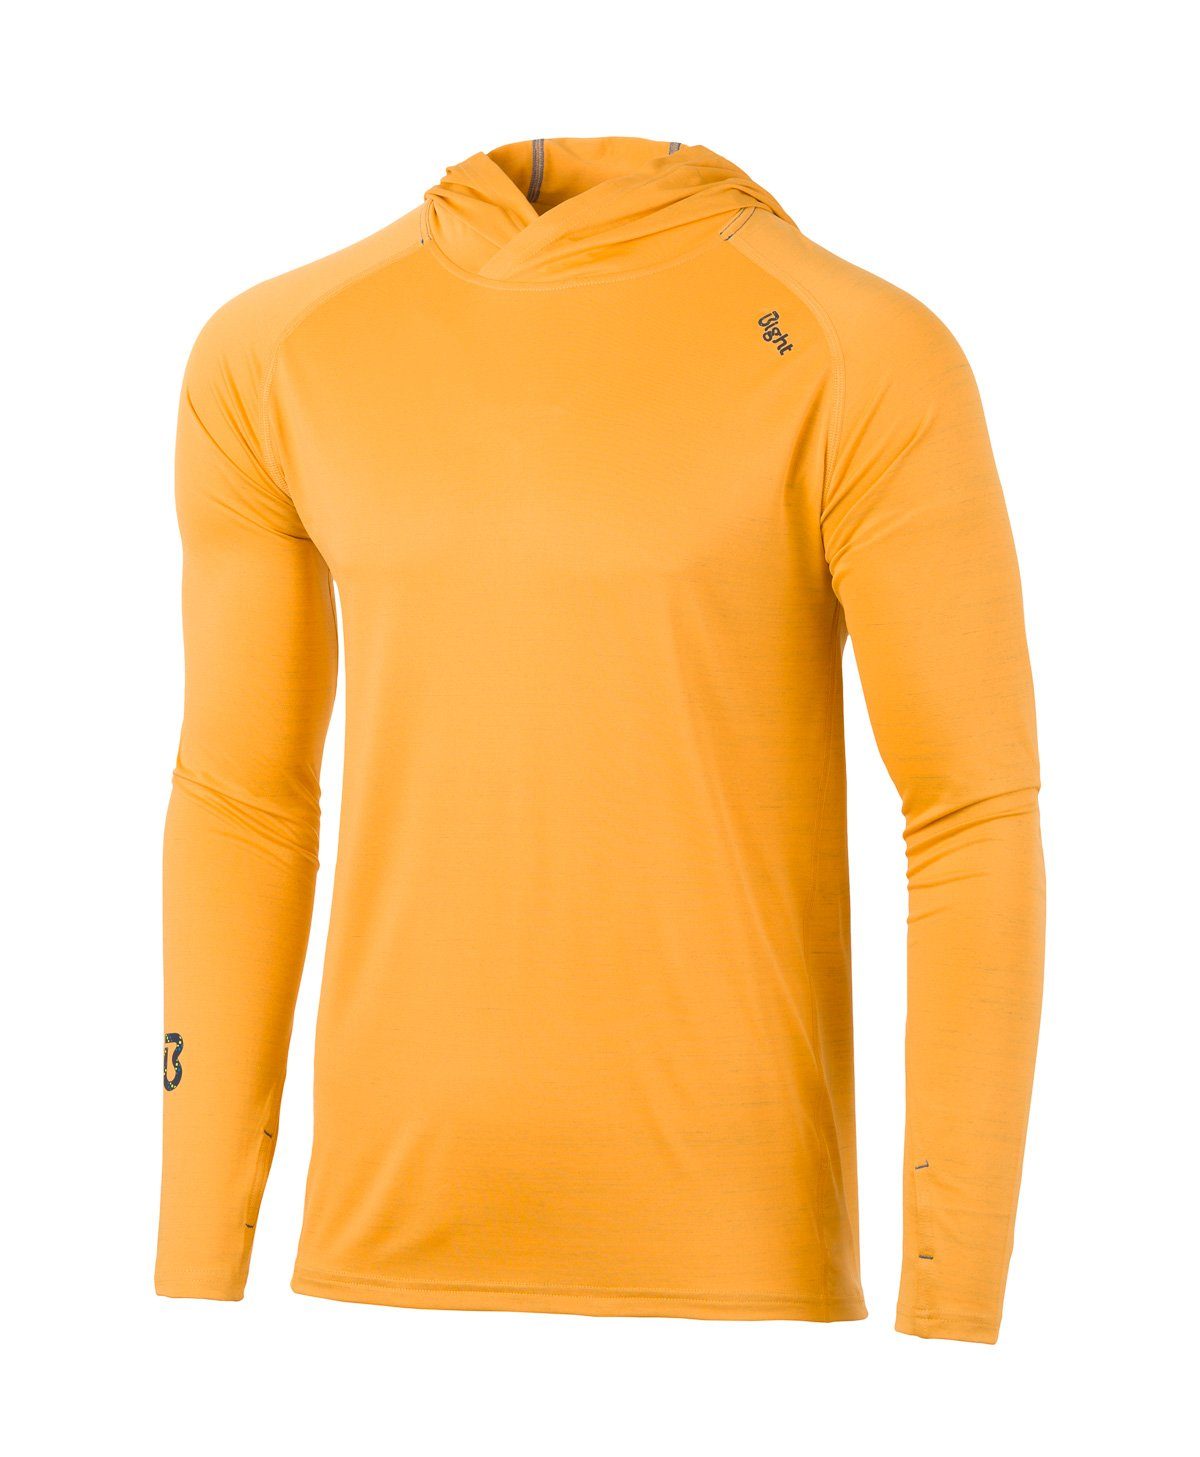 photo: Bight Gear Solstice Graphene Hoody base layer top